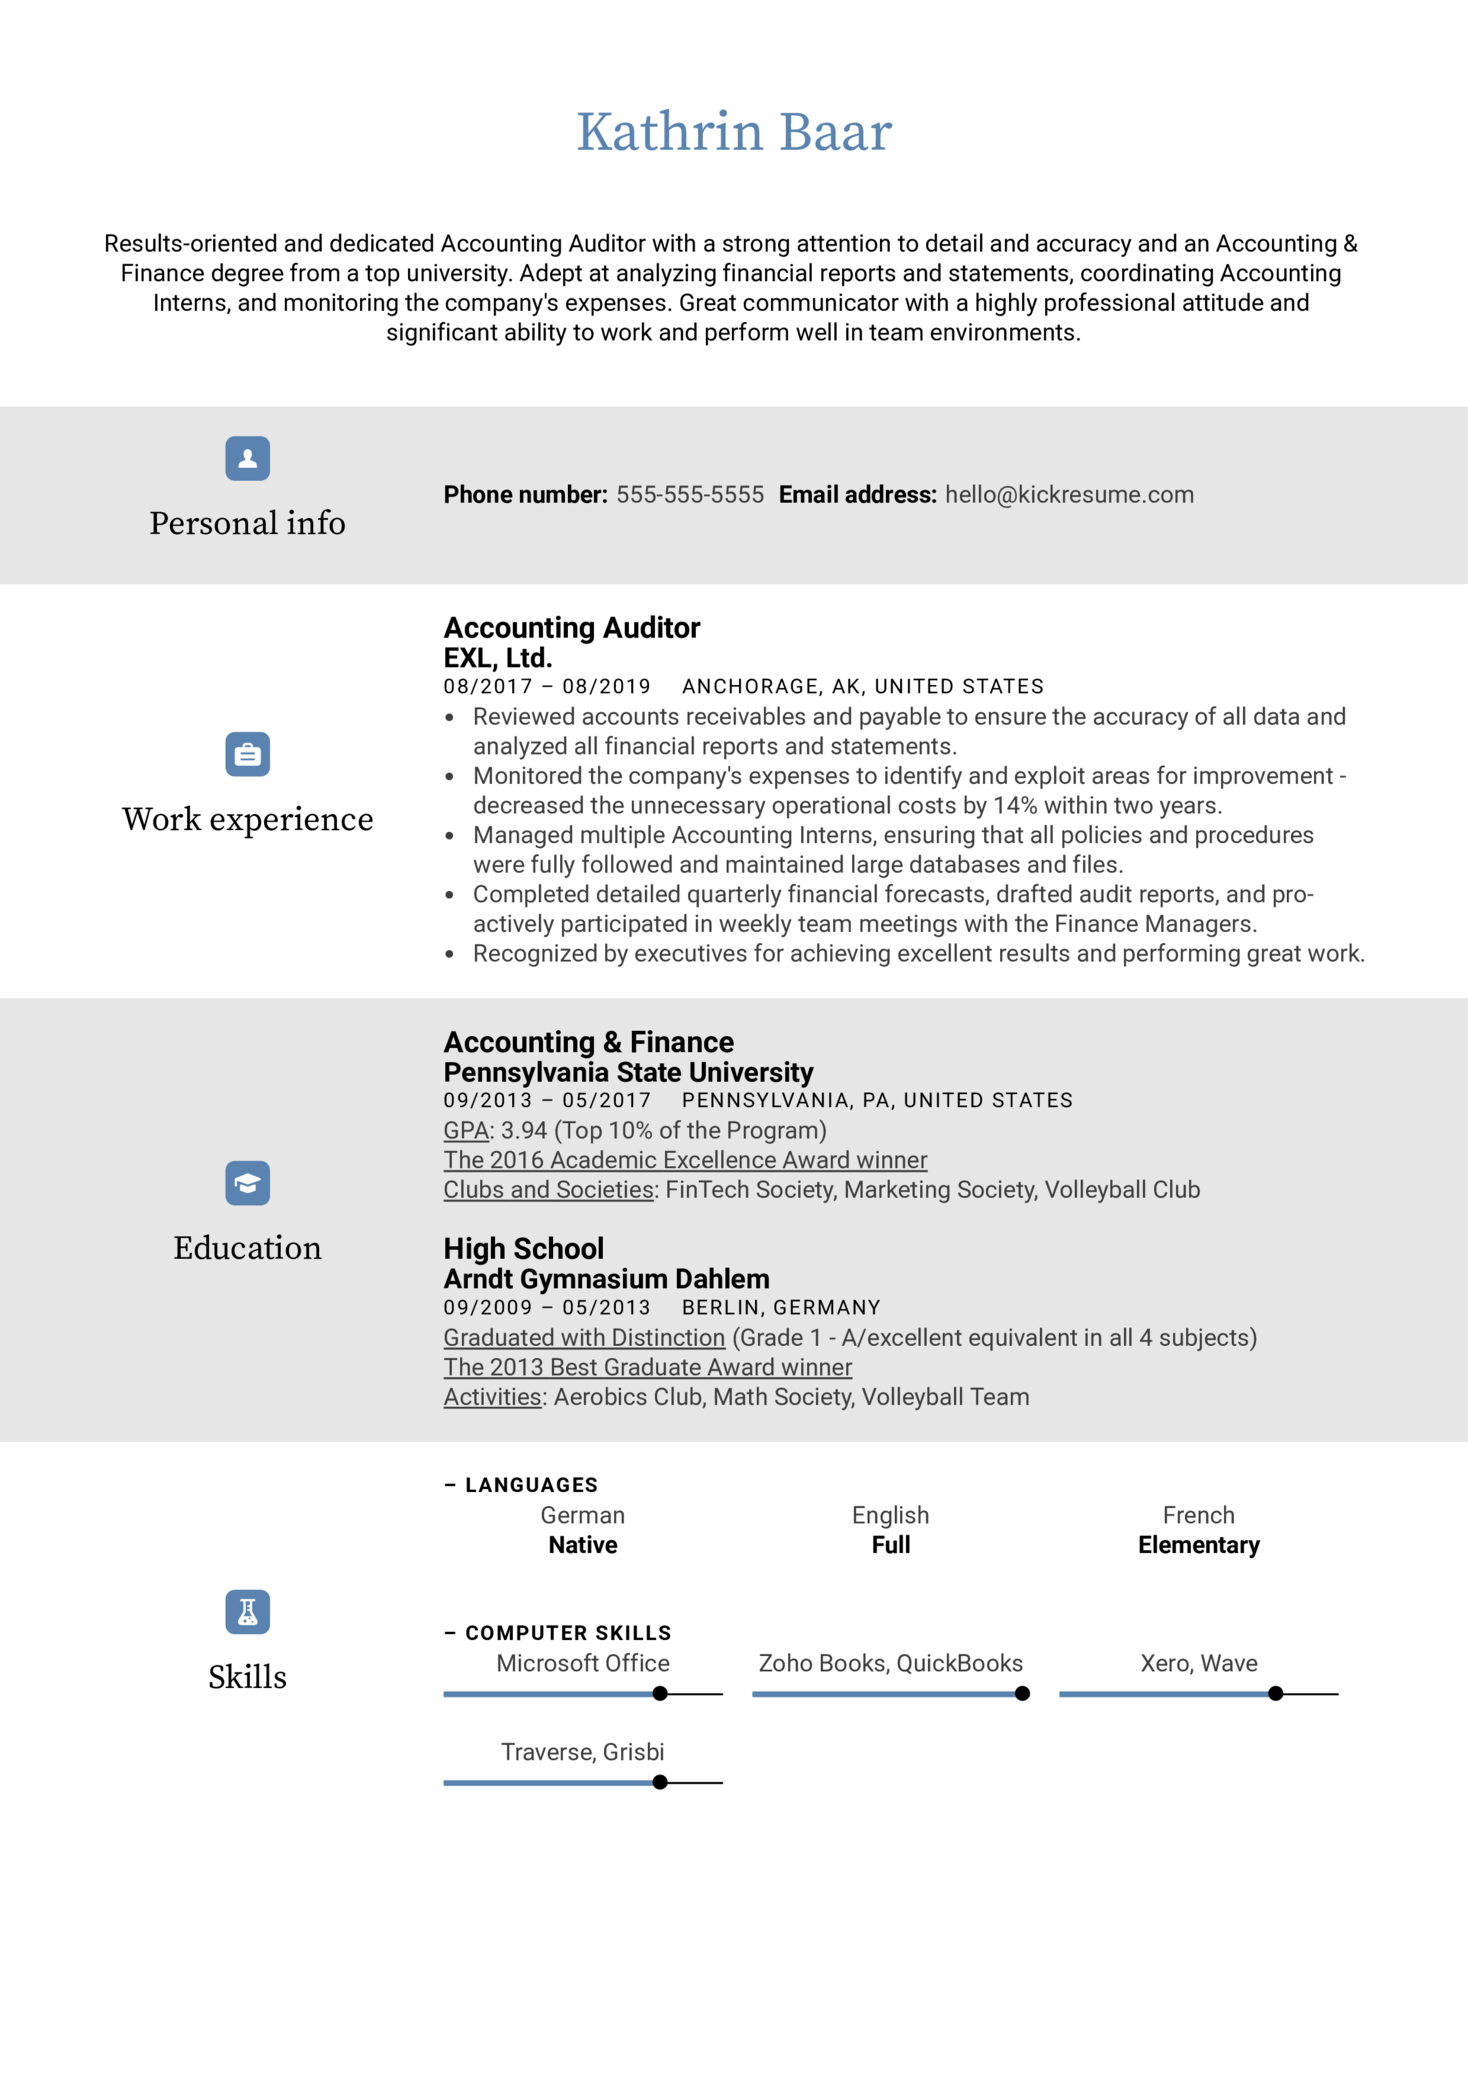 Accounting Auditor Resume Sample (parte 1)